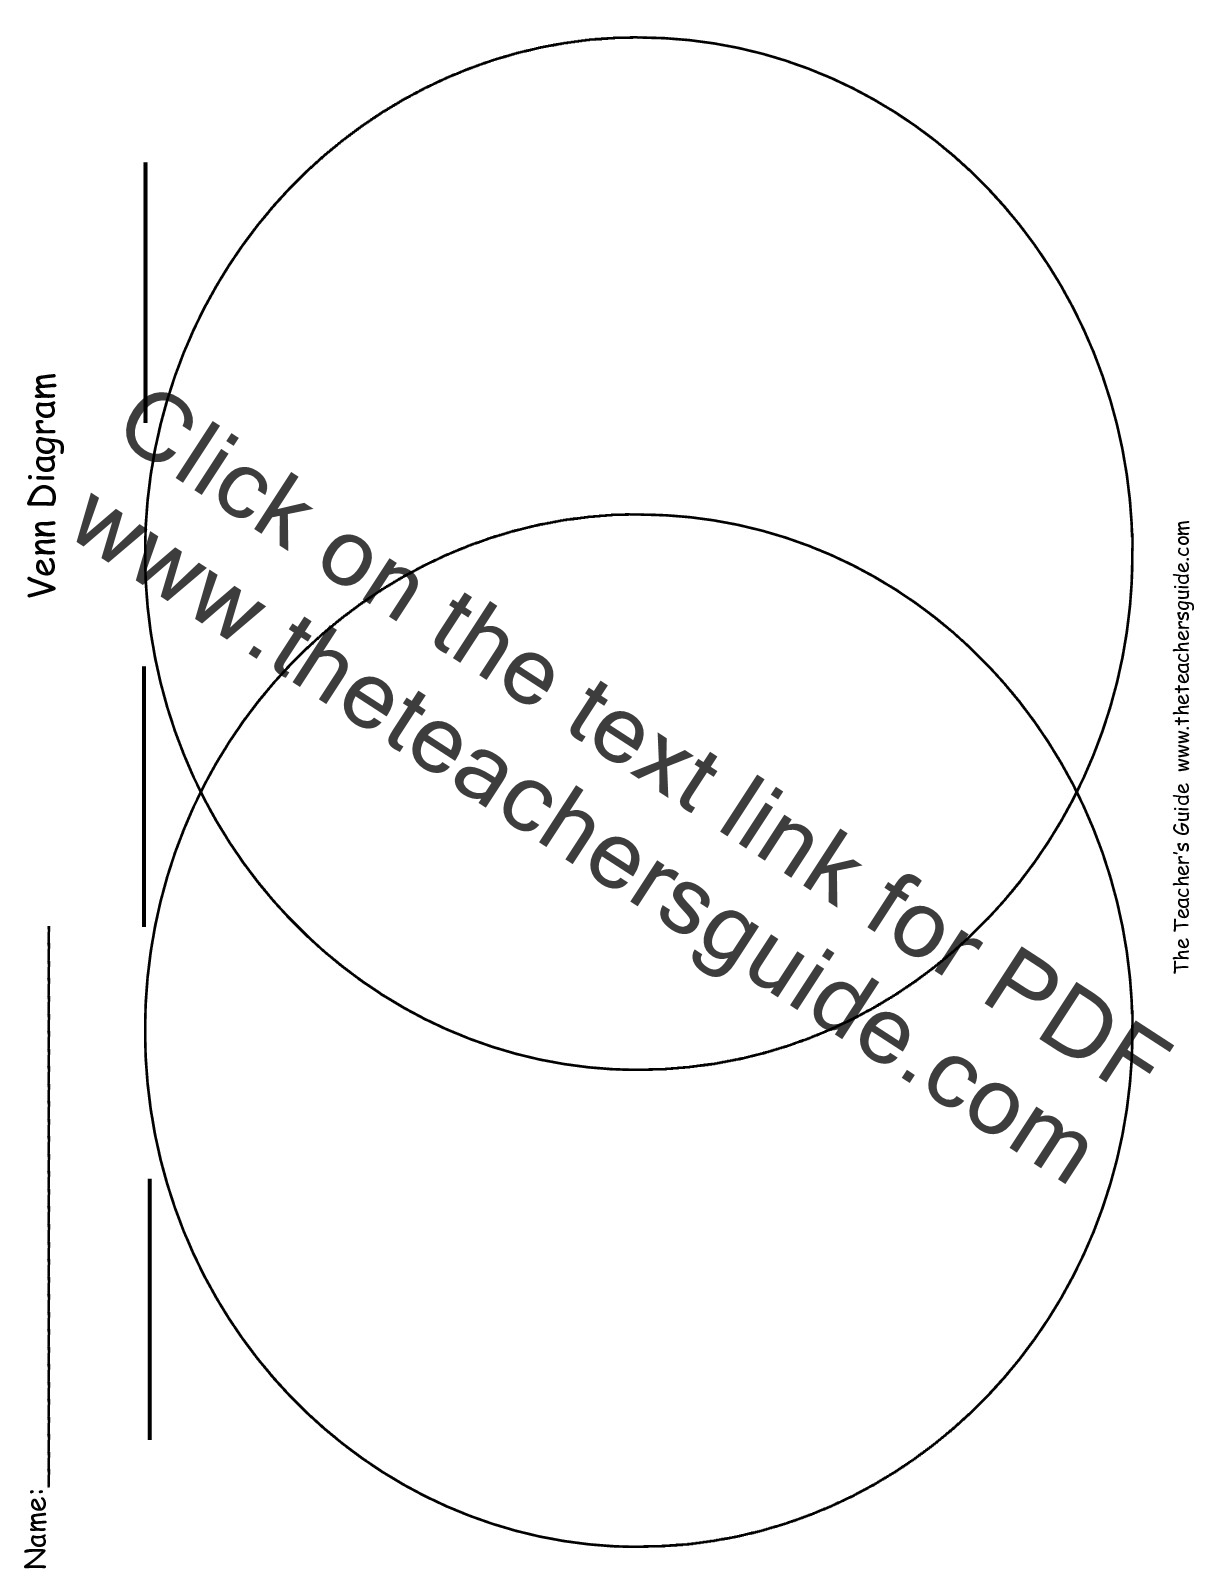 Writing Graphic Organizer Worksheets From The Teacher S Guide